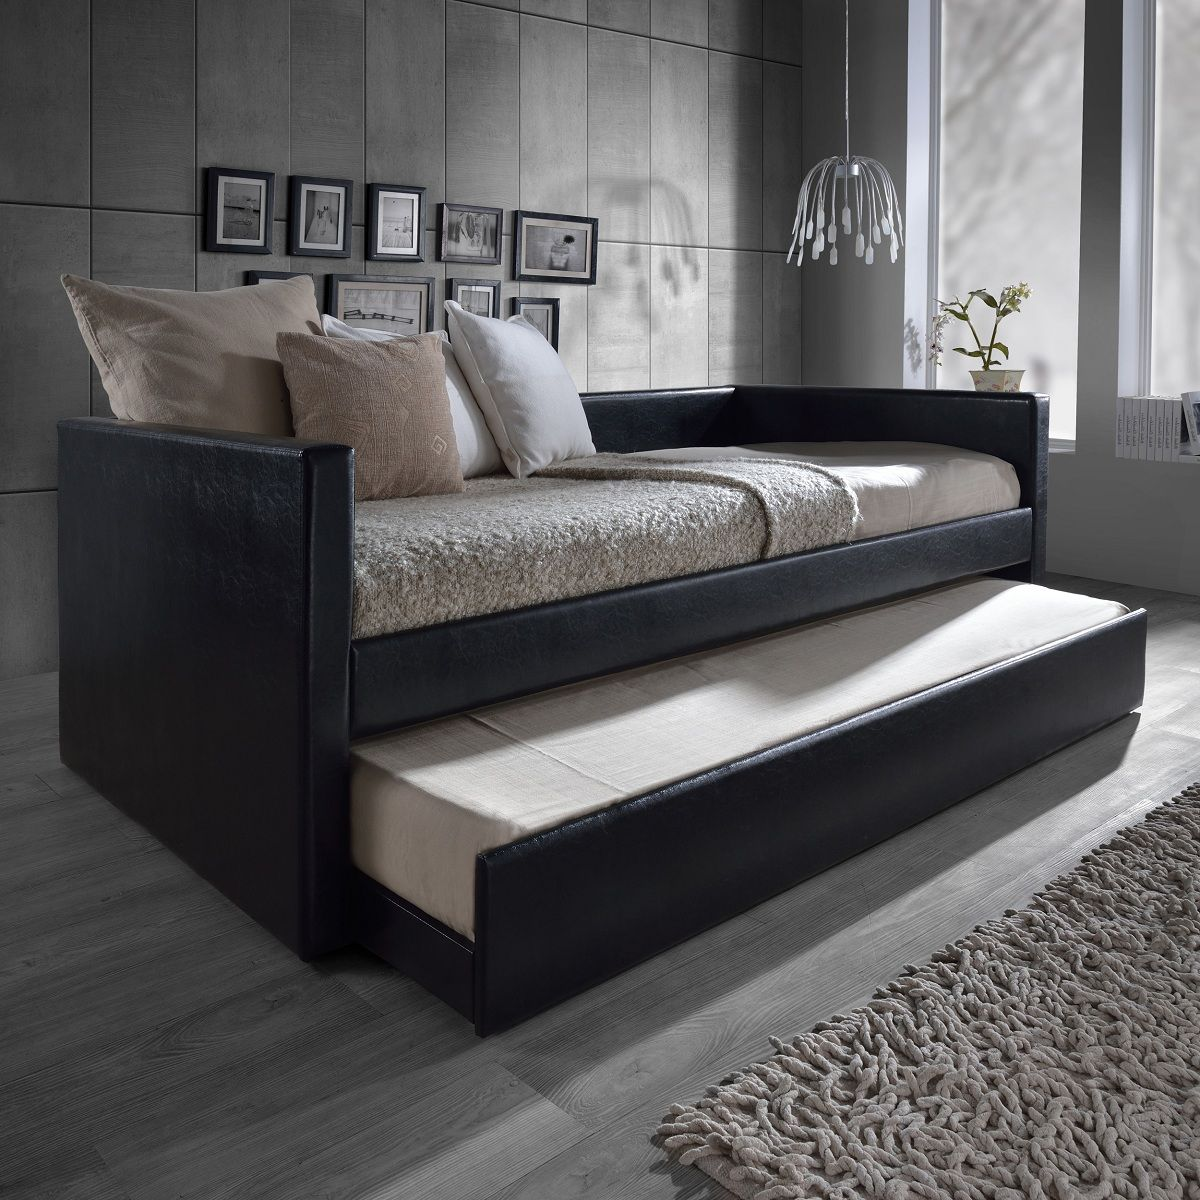 Daybed Trundle Bottom Bed House Ideas Daybed Daybed With